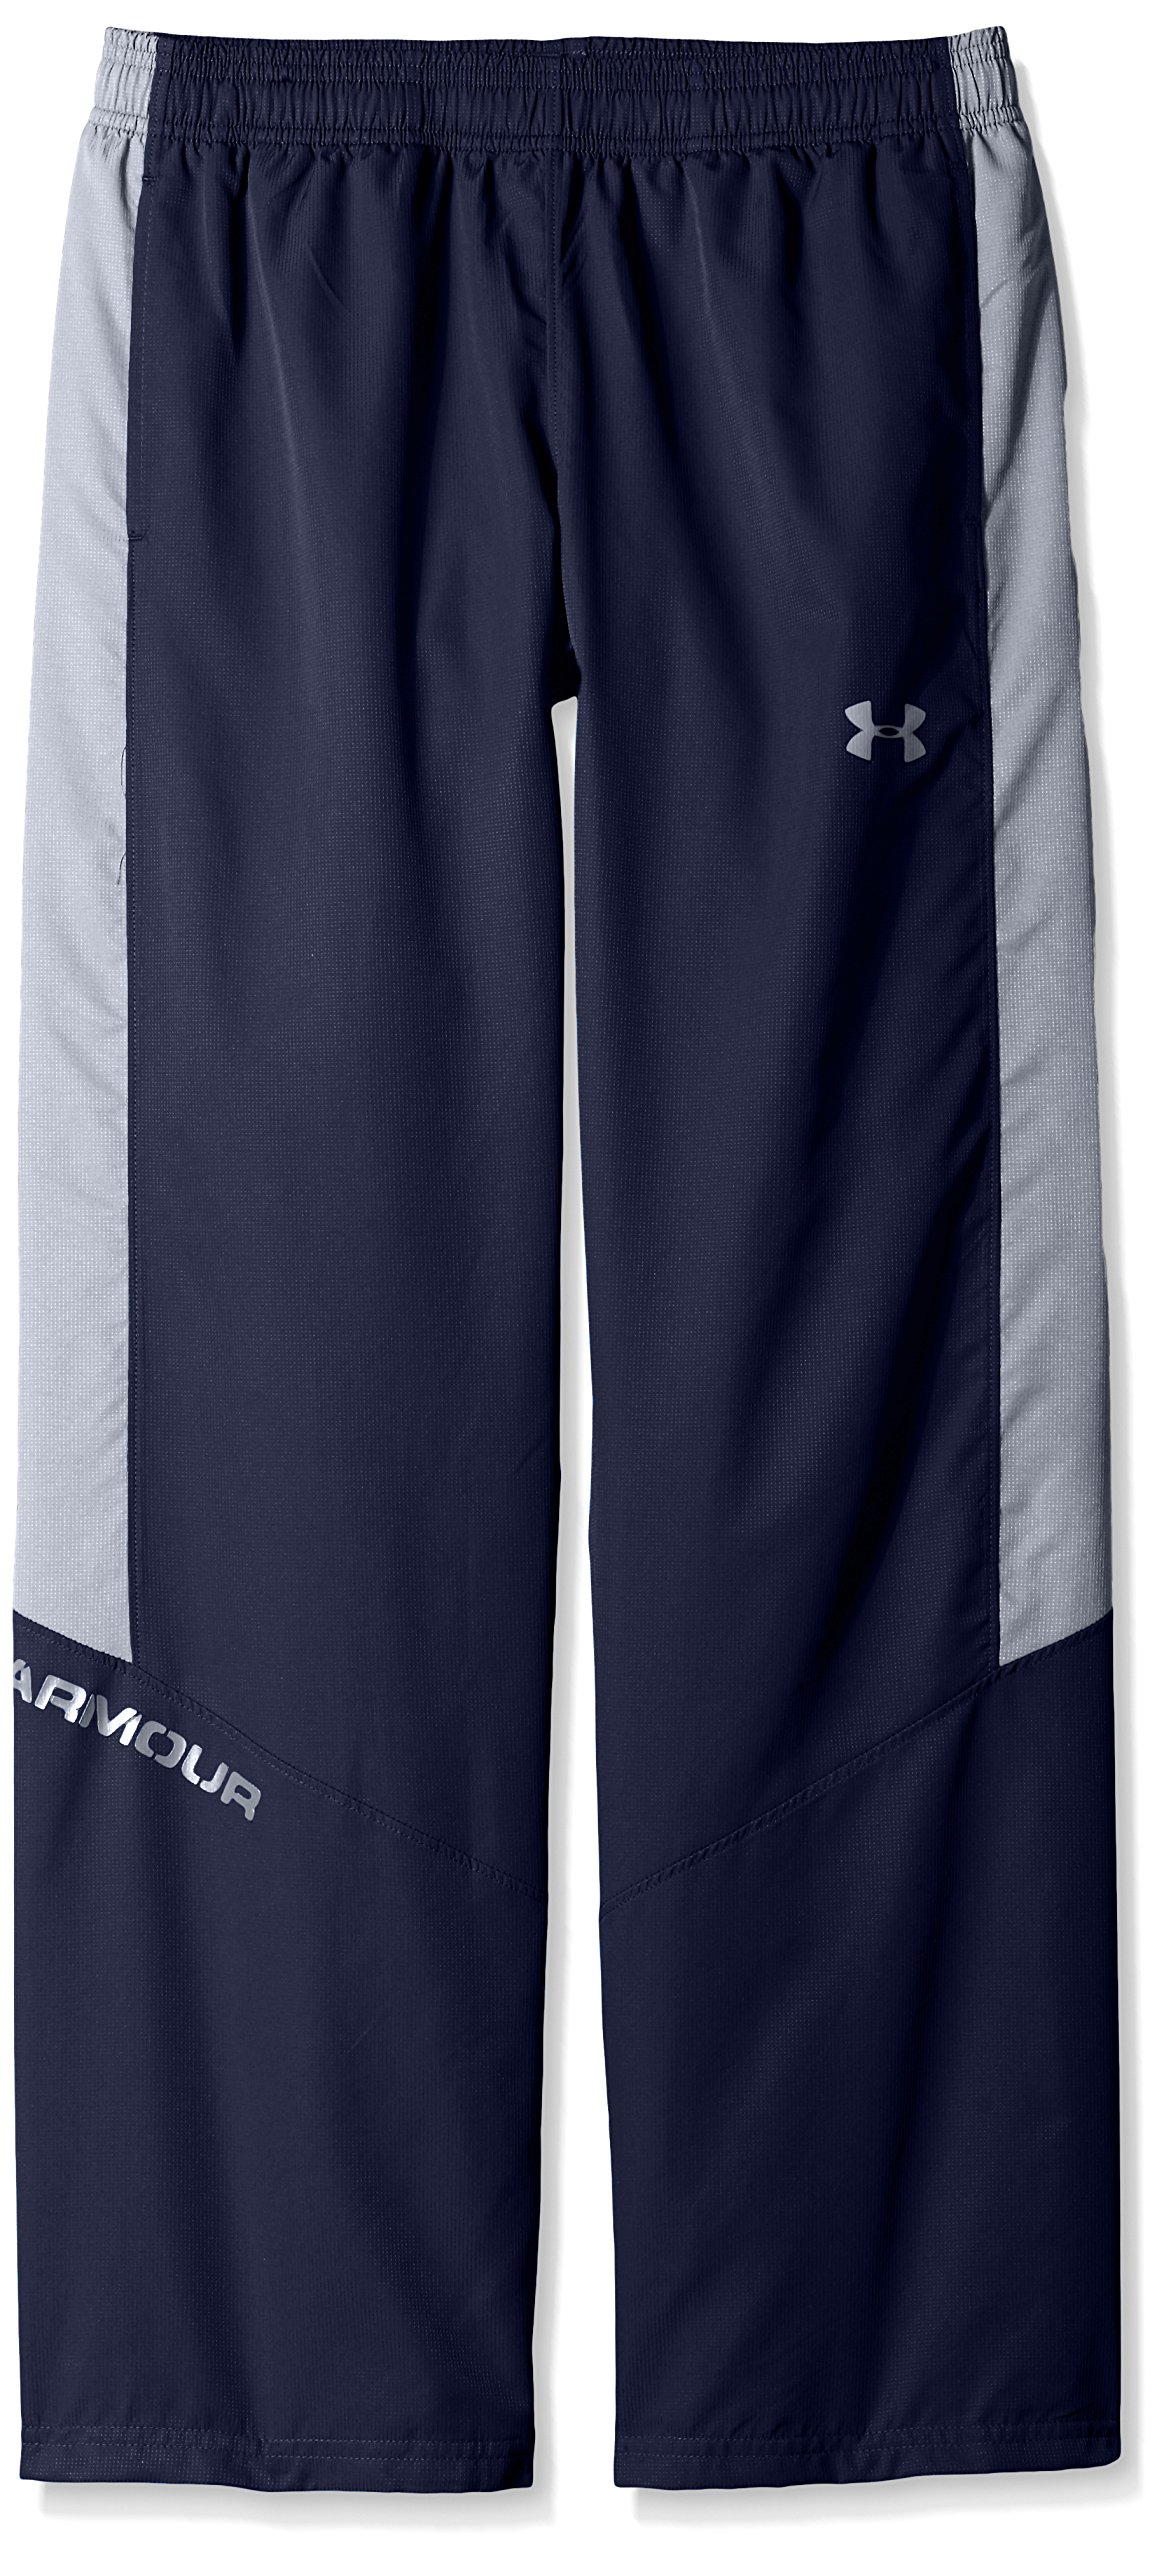 Under Armour Boys' Main Enforcer Woven Pants,Midnight Navy /Steel, Youth Small